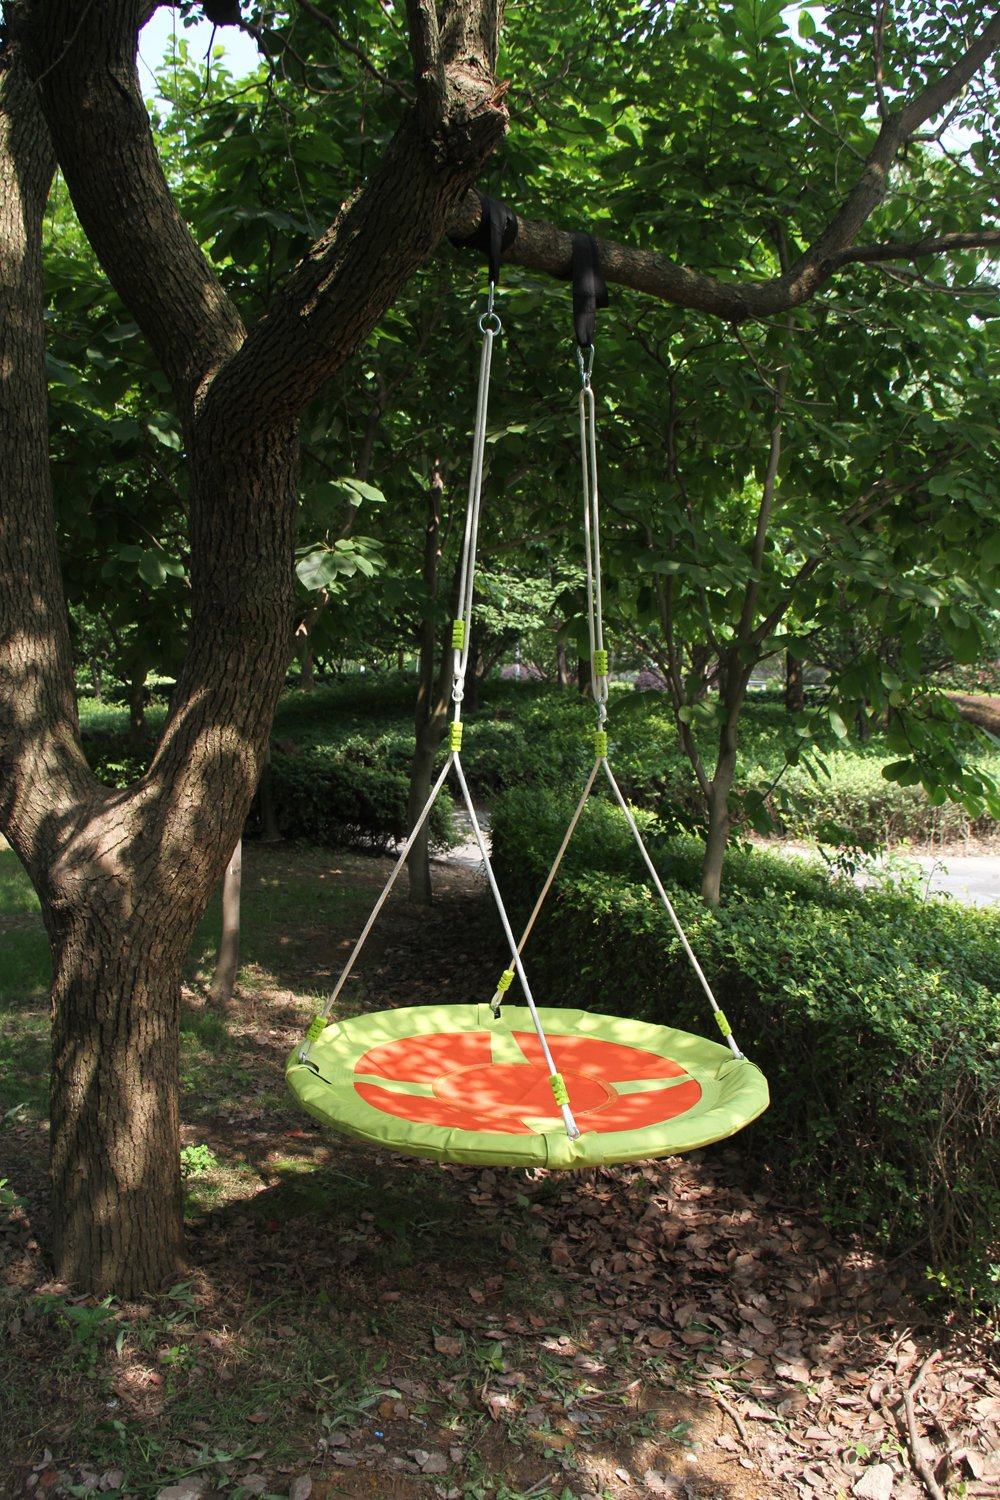 HAPPY PIE PLAY ADVENTURE Oxford 40 Saucer Spinner Tree Hanging Swing – Outdoor Playground Set Yellow